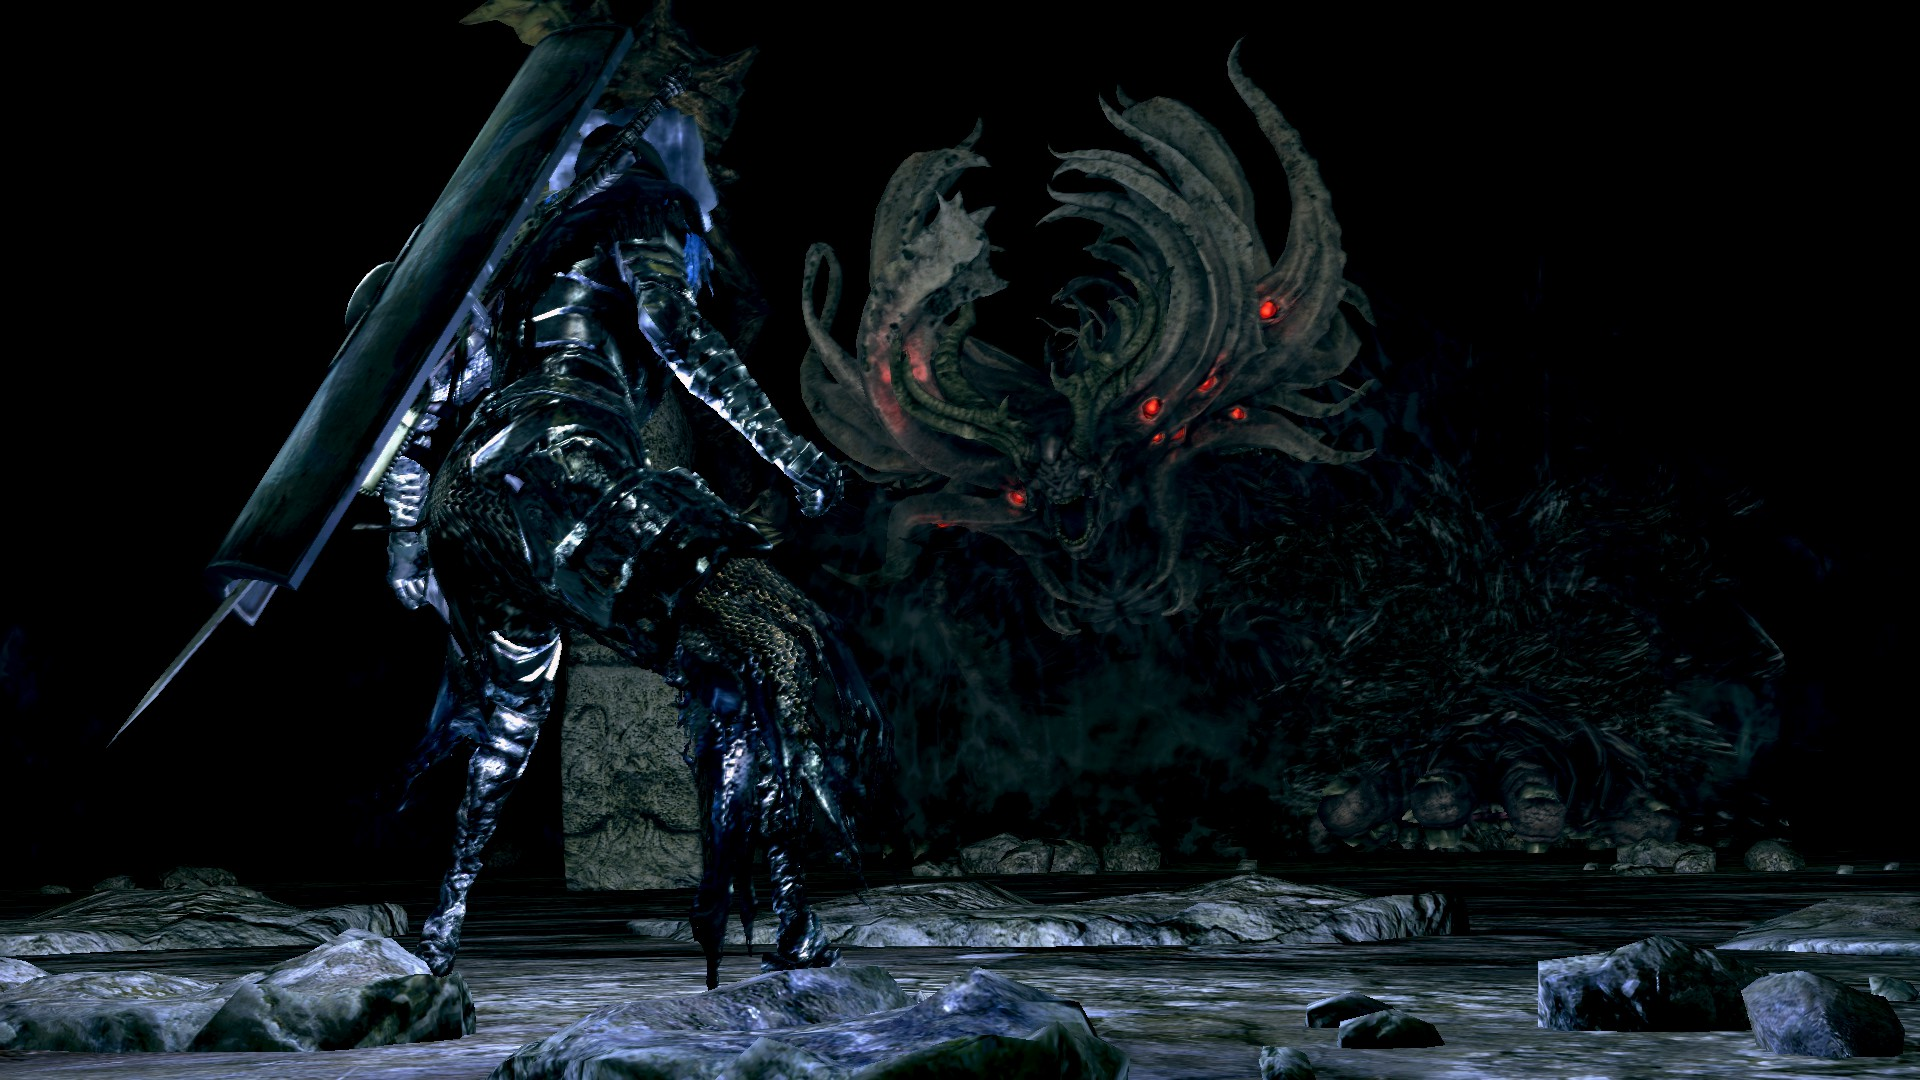 Free Download Dark Souls Ii Lore And Speculation Forbes 1920x1080